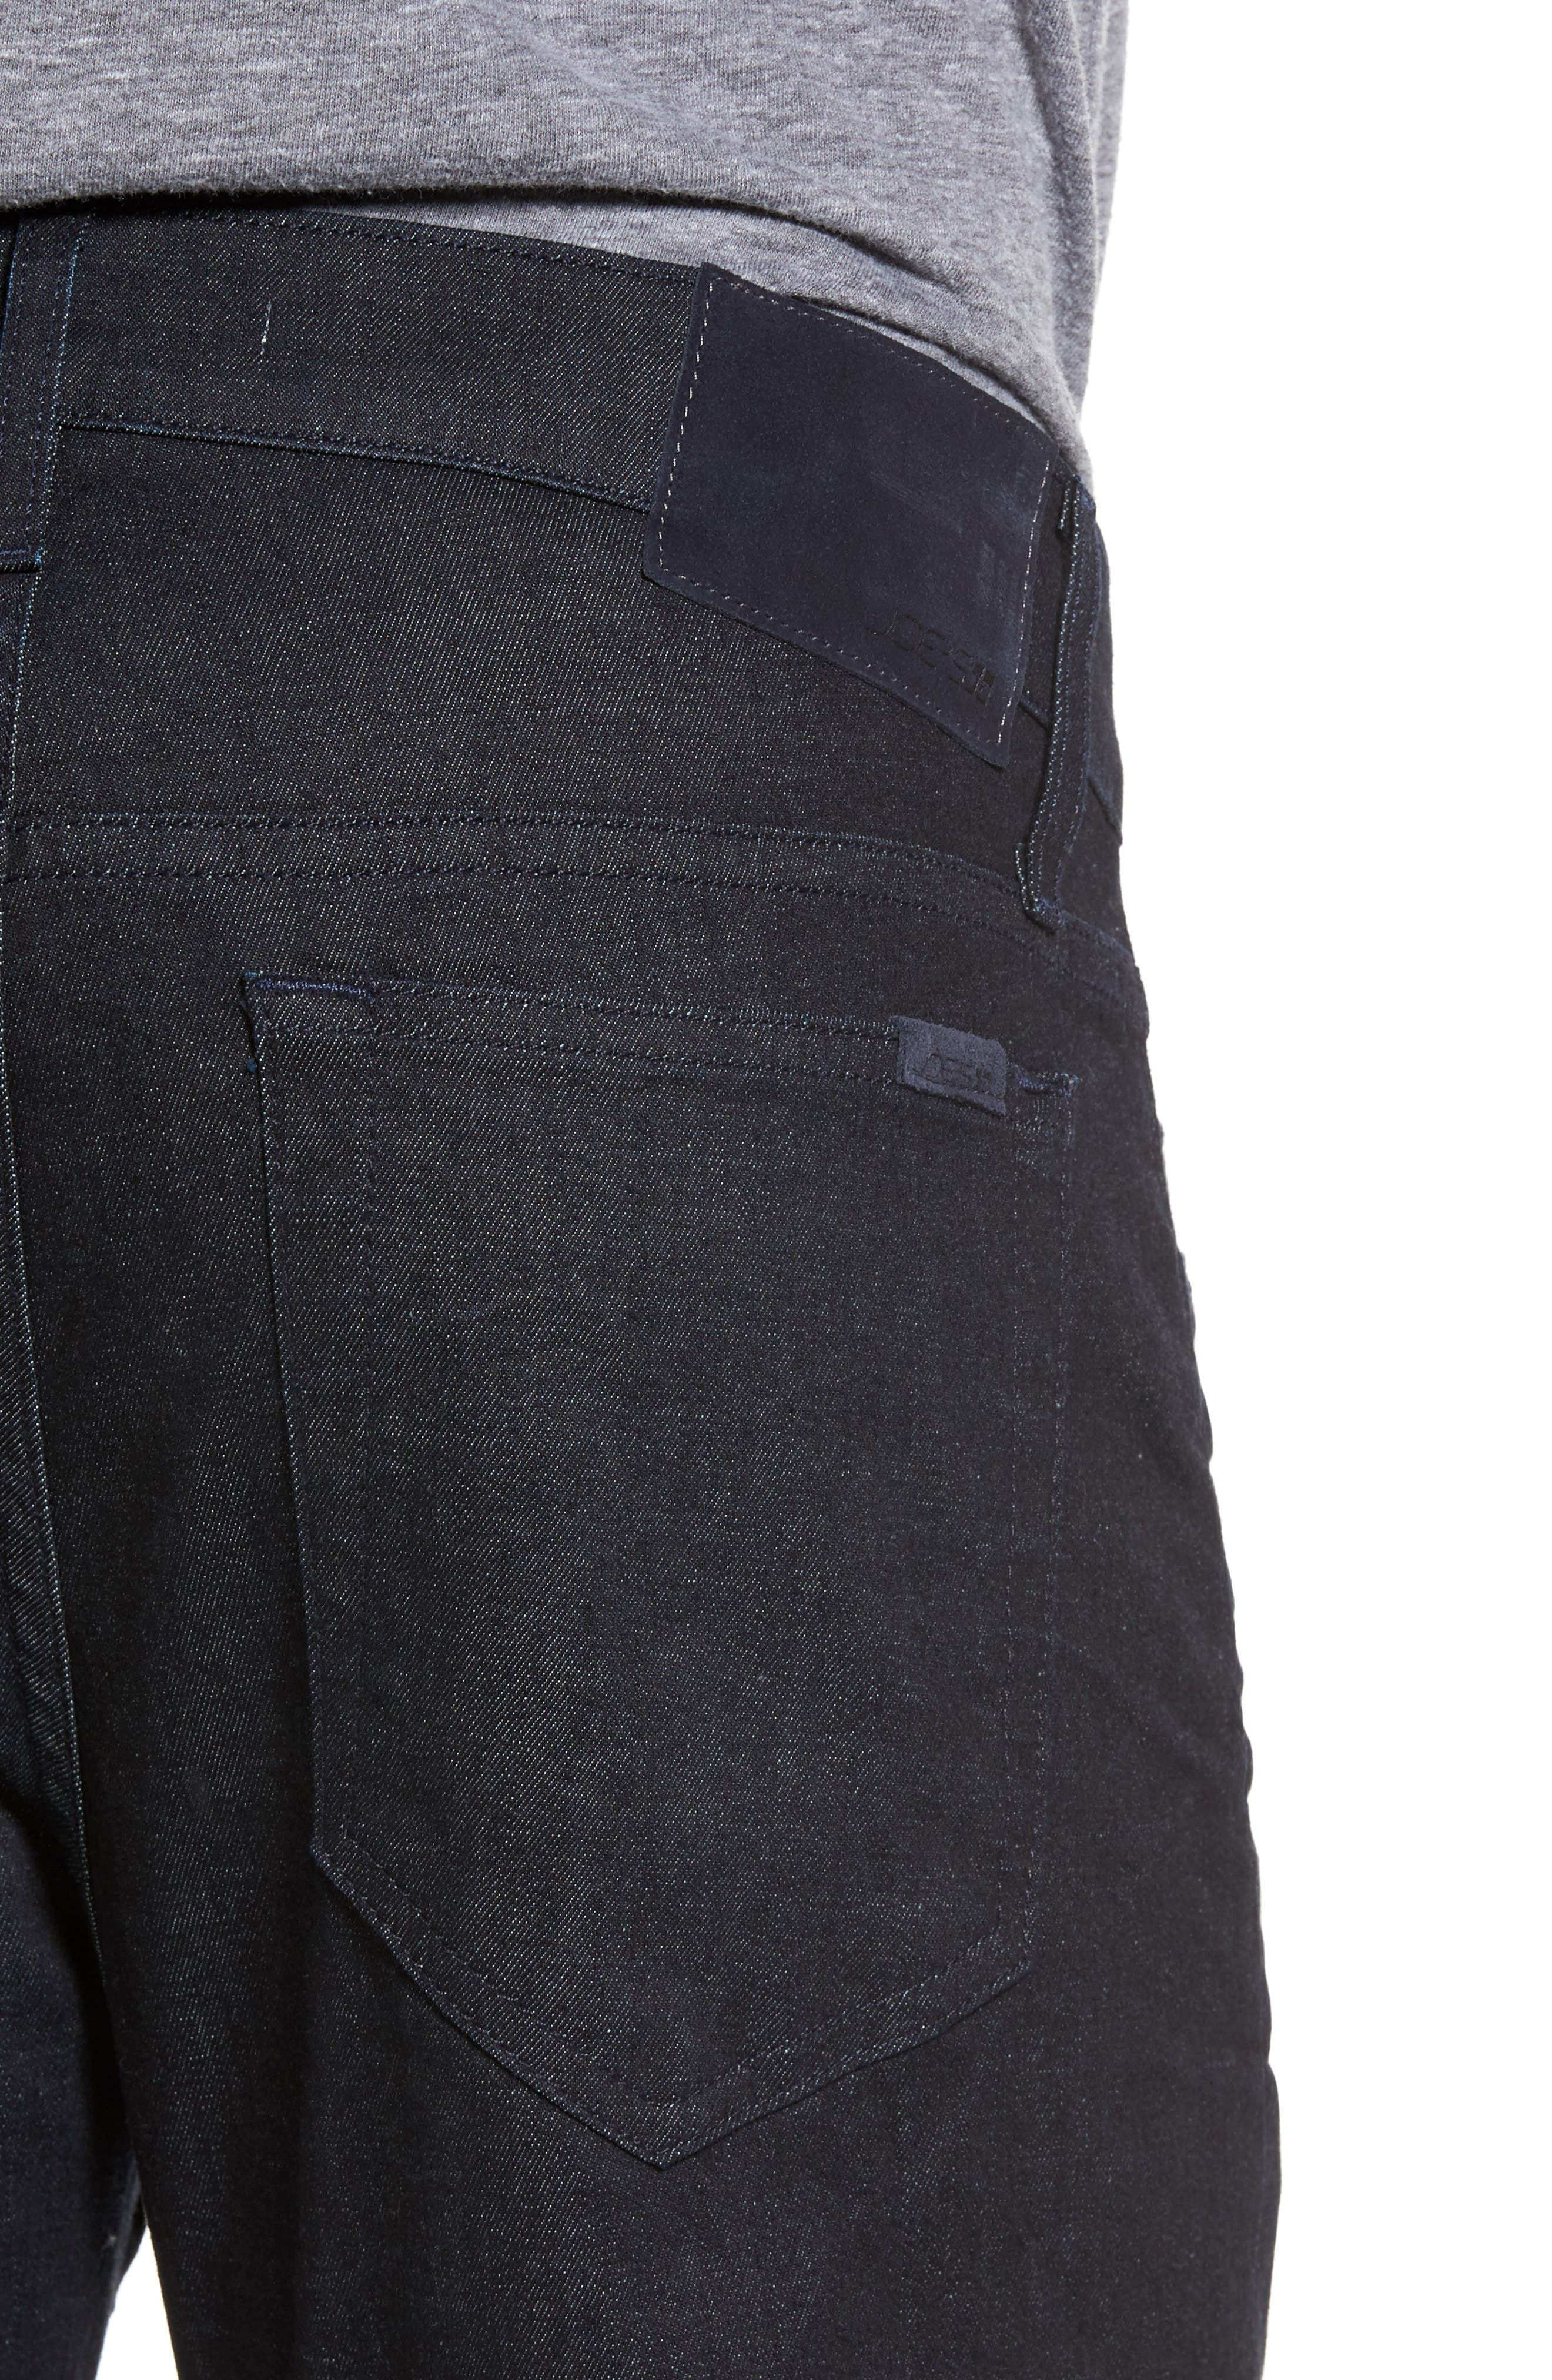 Brixton Slim Straight Fit Jeans,                             Alternate thumbnail 4, color,                             Foster